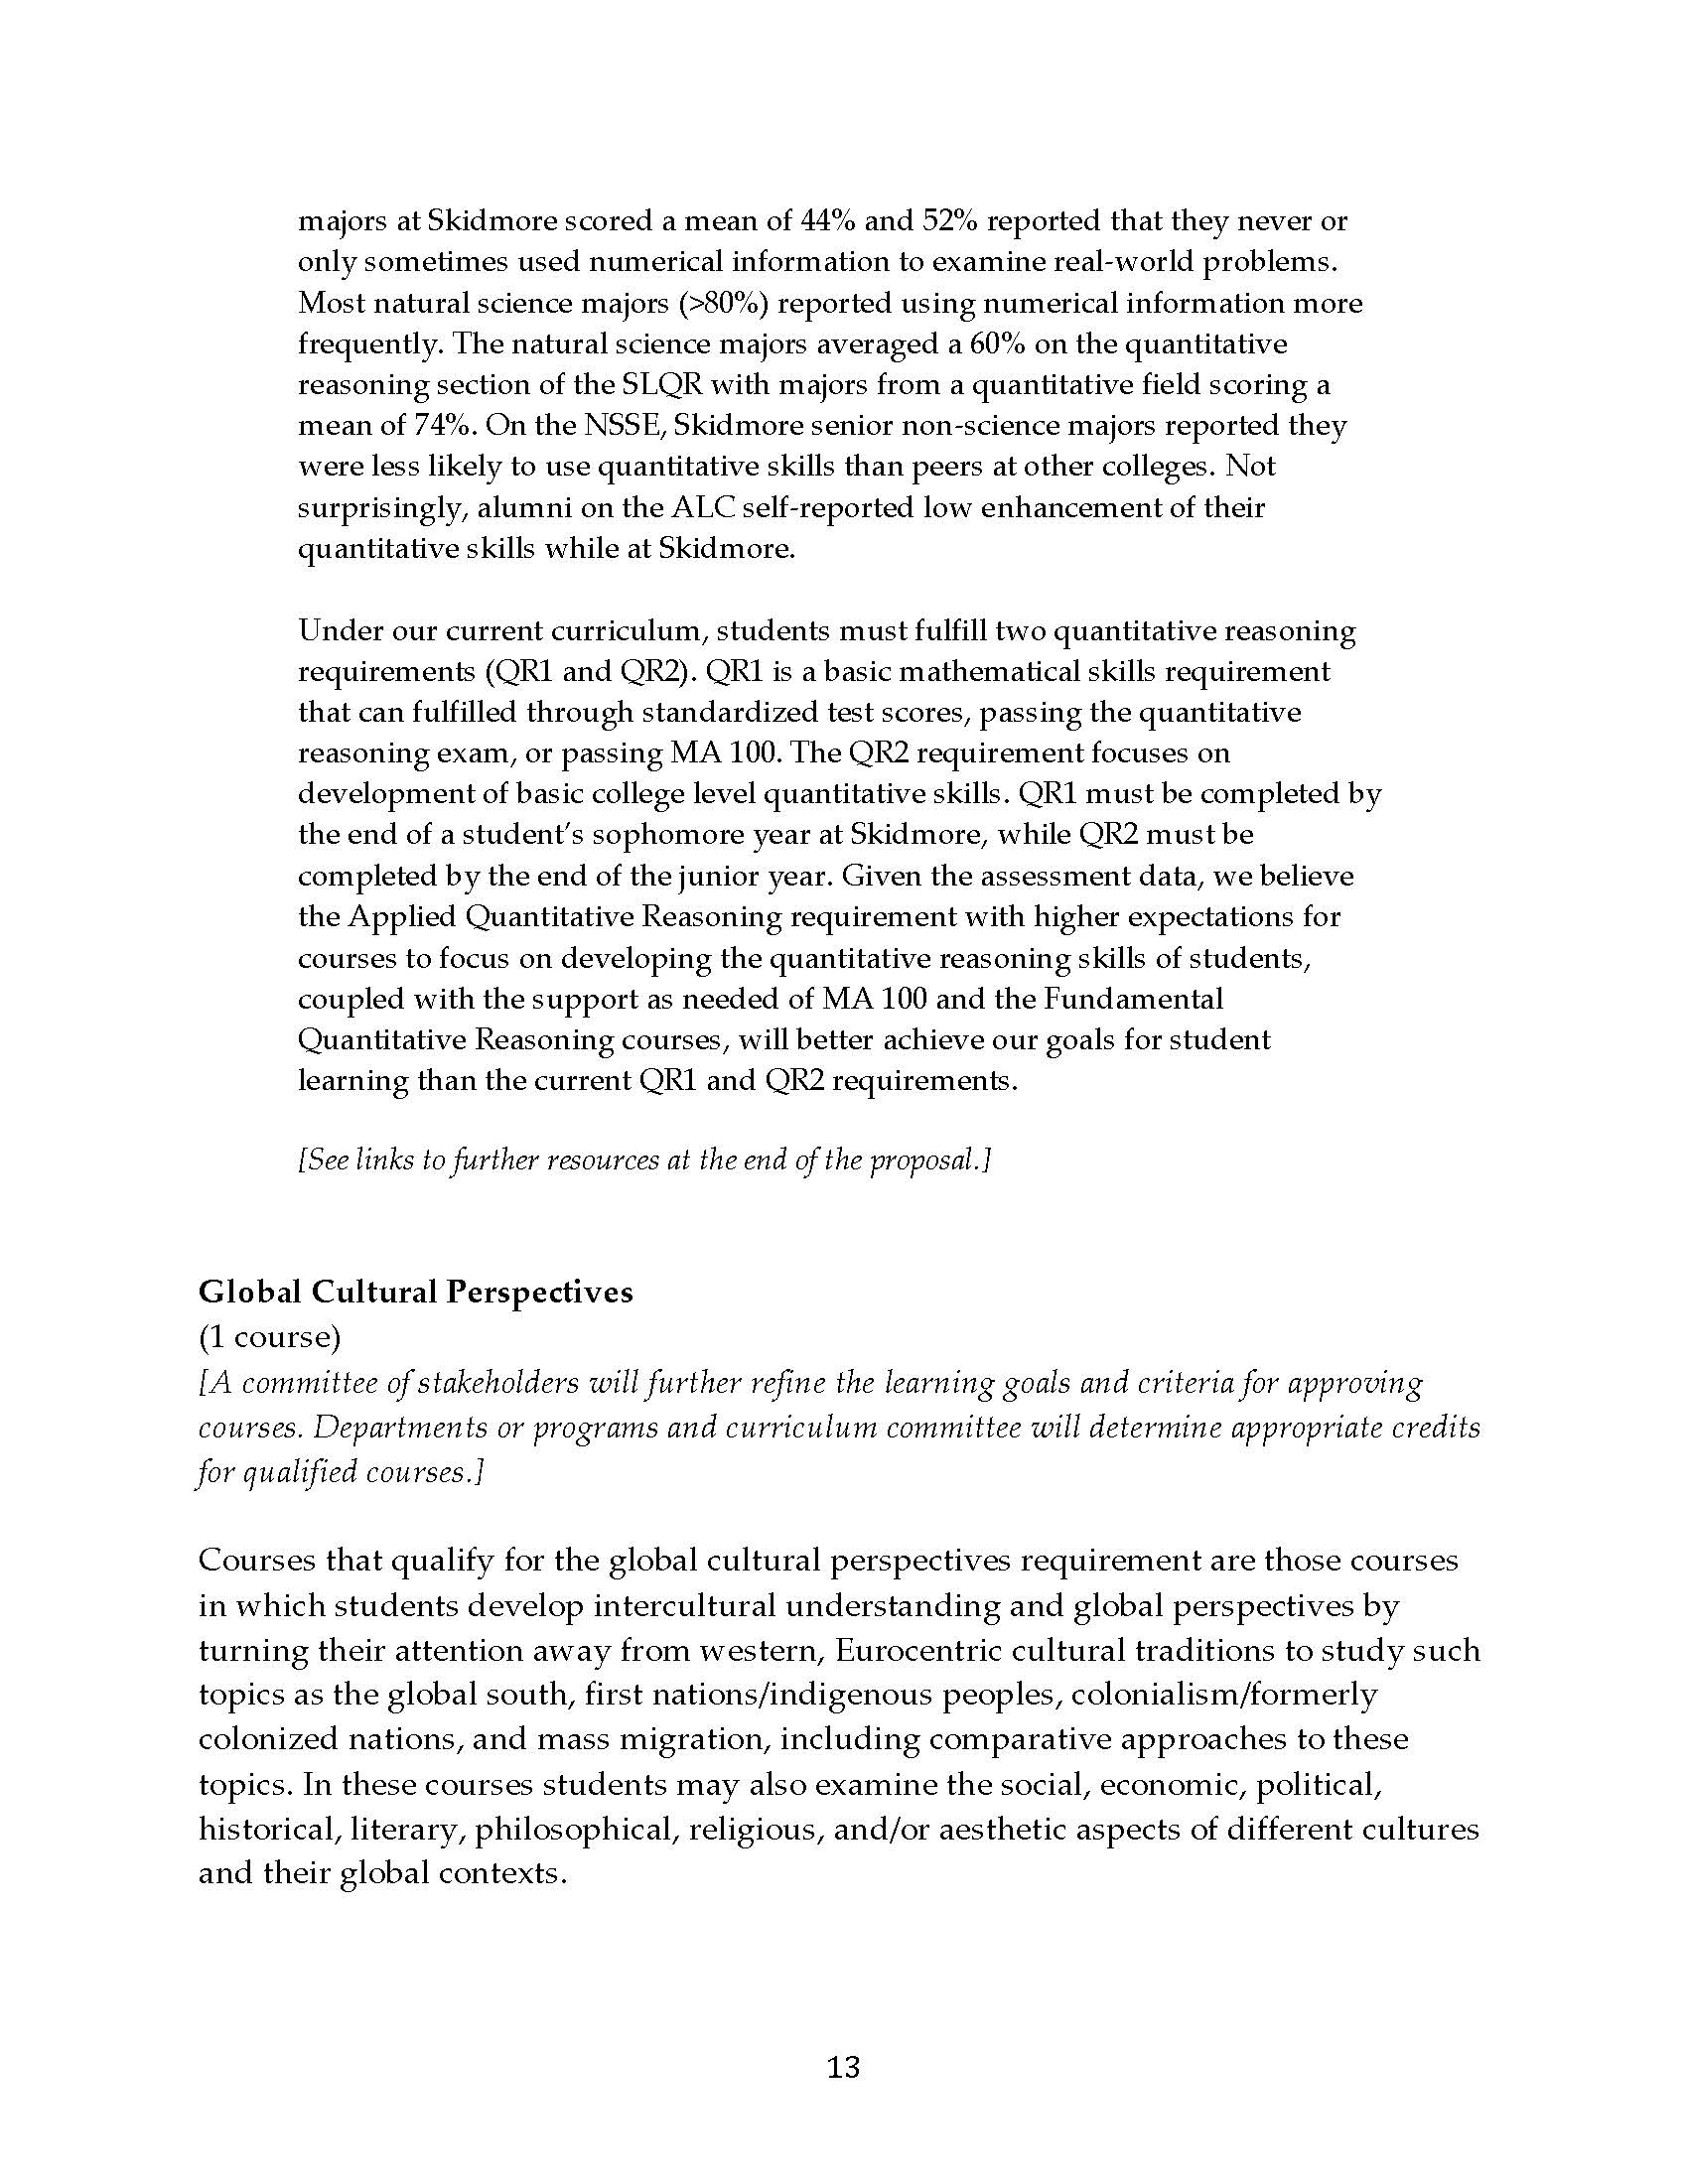 General Education Proposal February 28 2017_Page_13.jpg